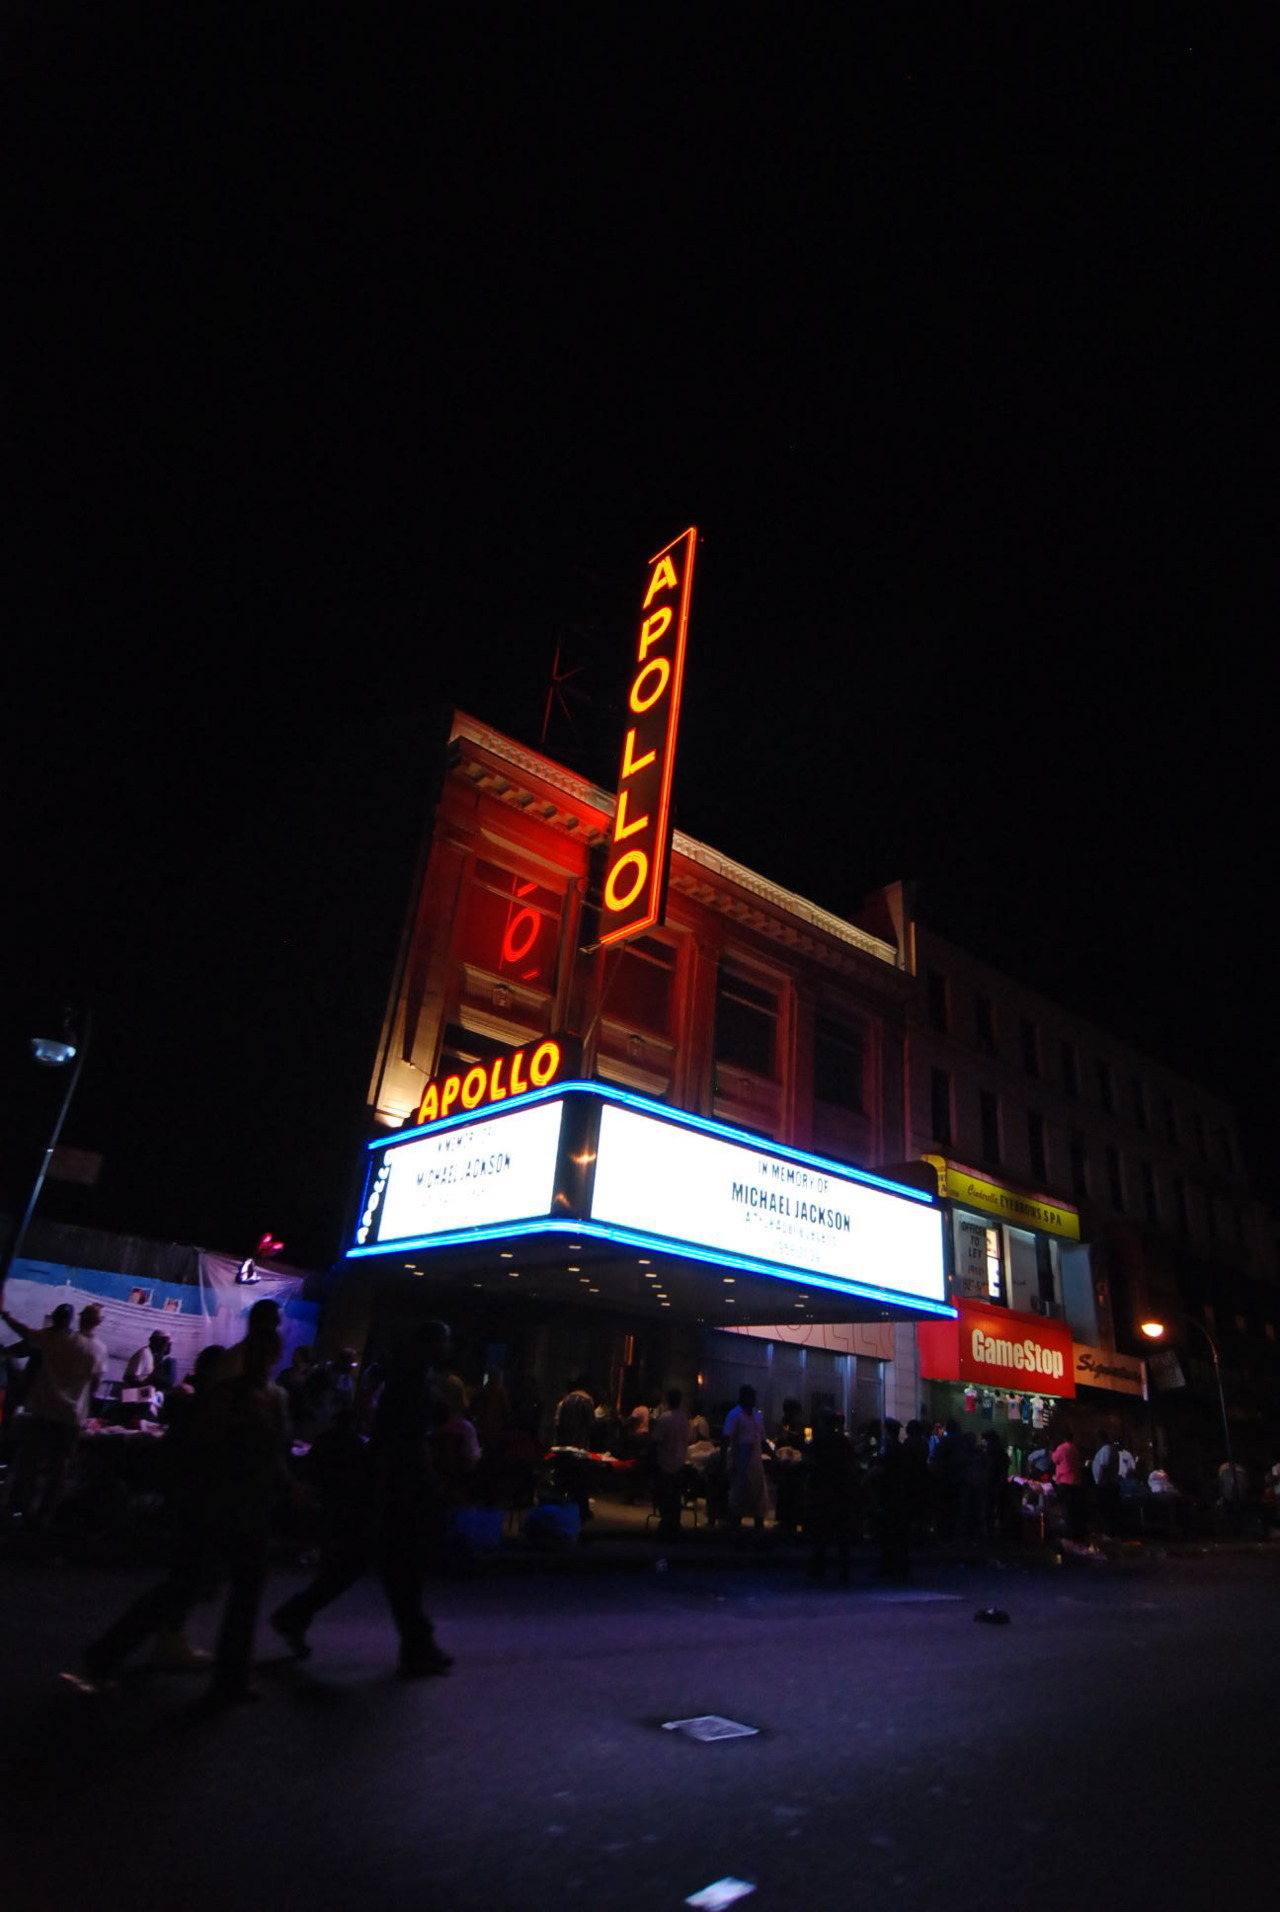 Apollo Theater Harlem | NYC © CHRIS HYUN CHOI